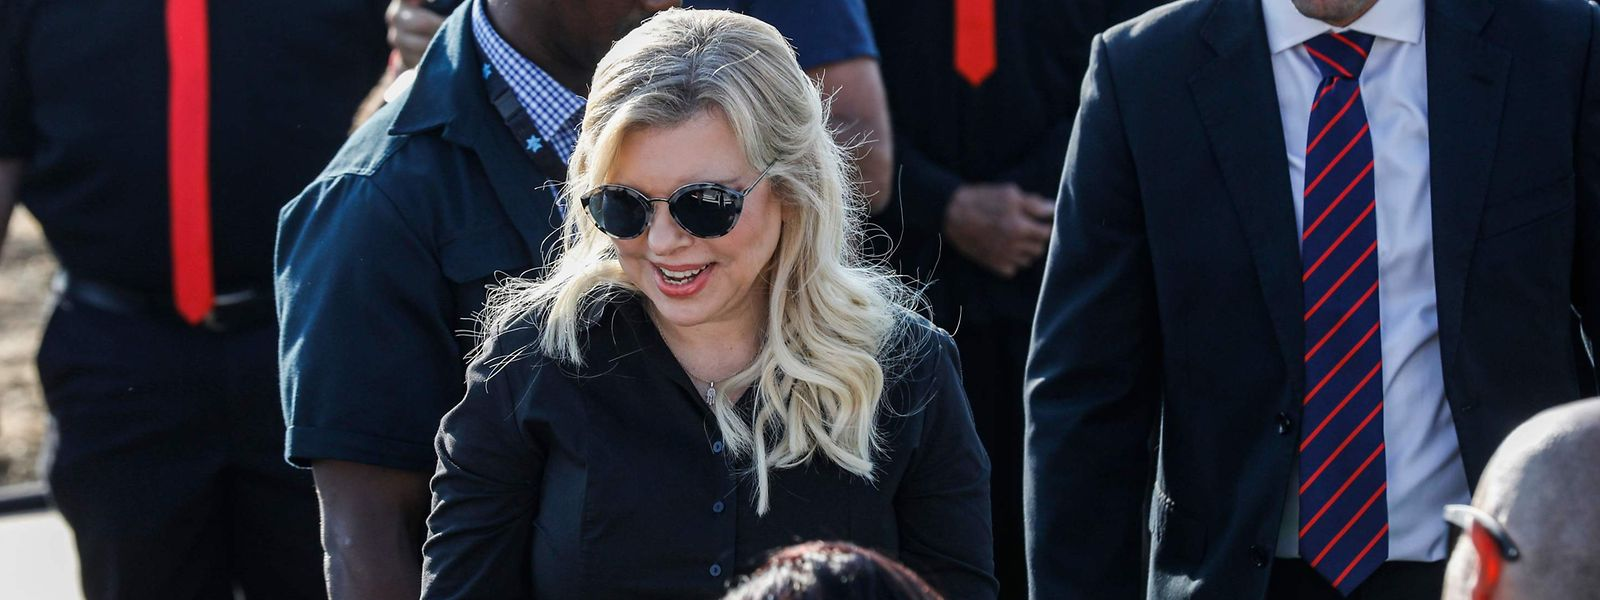 """Sara Netanyahu (C, front), wife of the Israeli Prime Minister, attends the unveiling ceremony for the new settlement of """"Ramat Trump"""", or """"Trump Heights"""" in English, named after the incumbent US President, in the Israeli-annexed Golan Heights on June 16, 2019 - Sara Netanyahu was on June 16 convicted of fraudulently using state funds for meals, under a plea bargain which dropped more severe charges. On the same day, her husband unveiled a """"Trump Heights"""" sign to mark the site of the new settlement, after the US president in late March recognised Israeli sovereignty over the part of the strategic plateau it seized from Syria in the 1967 Six-Day war. (Photo by Jalaa MAREY / AFP)"""